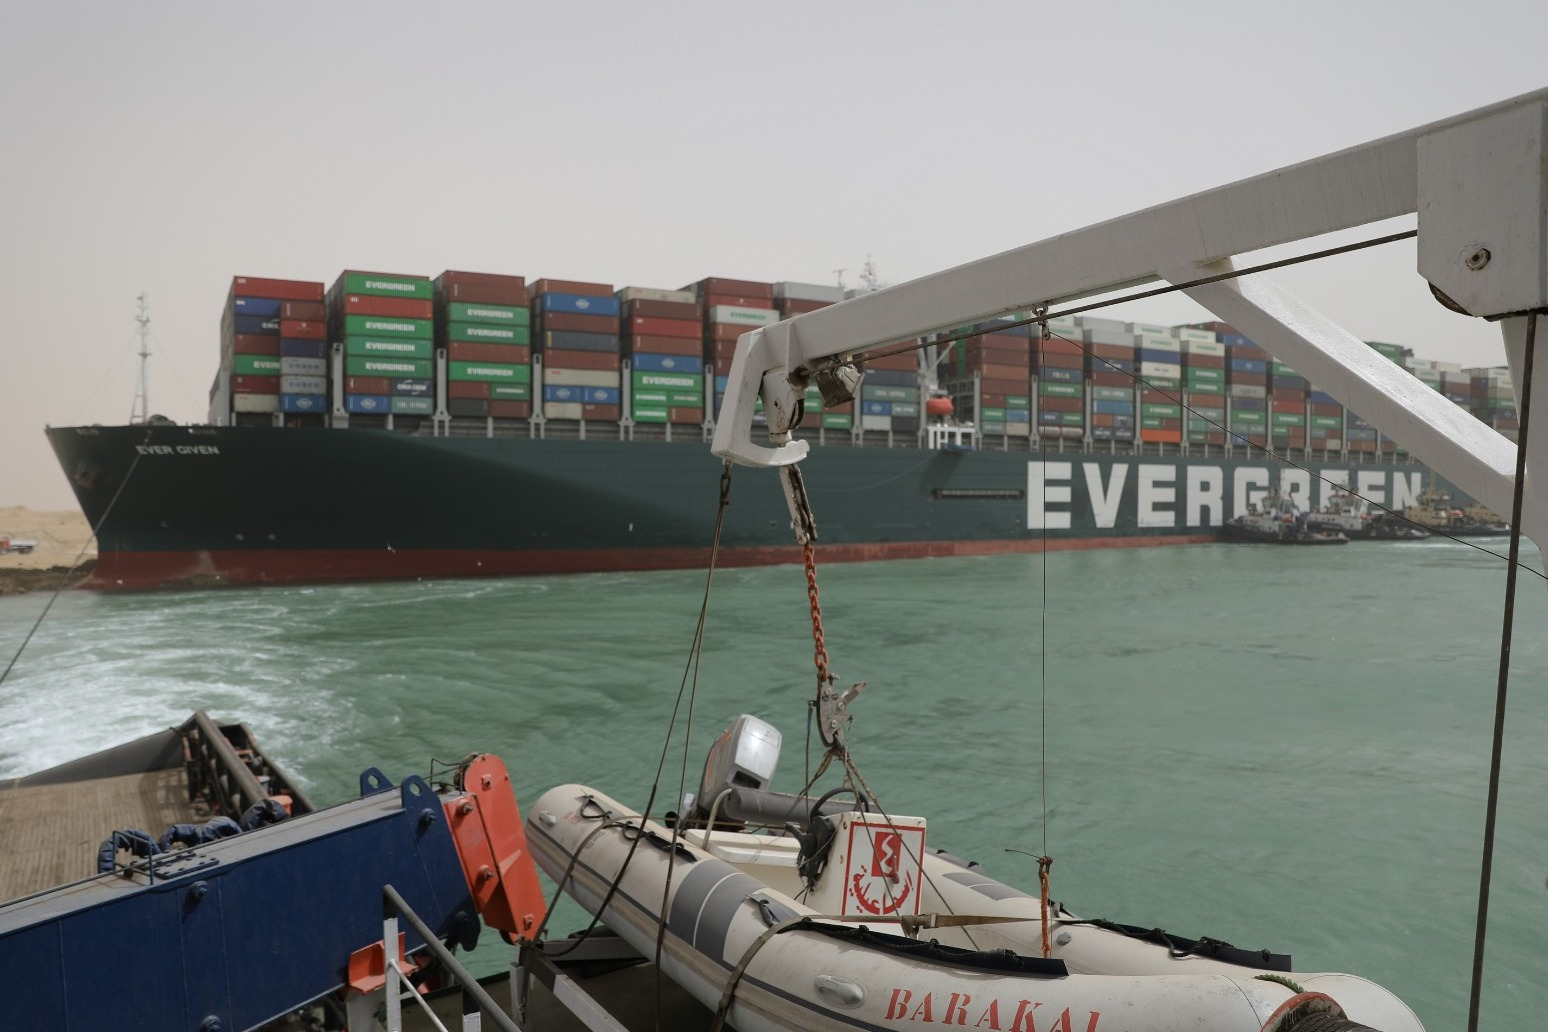 Investigation under way after cargo ship freed in Suez Canal